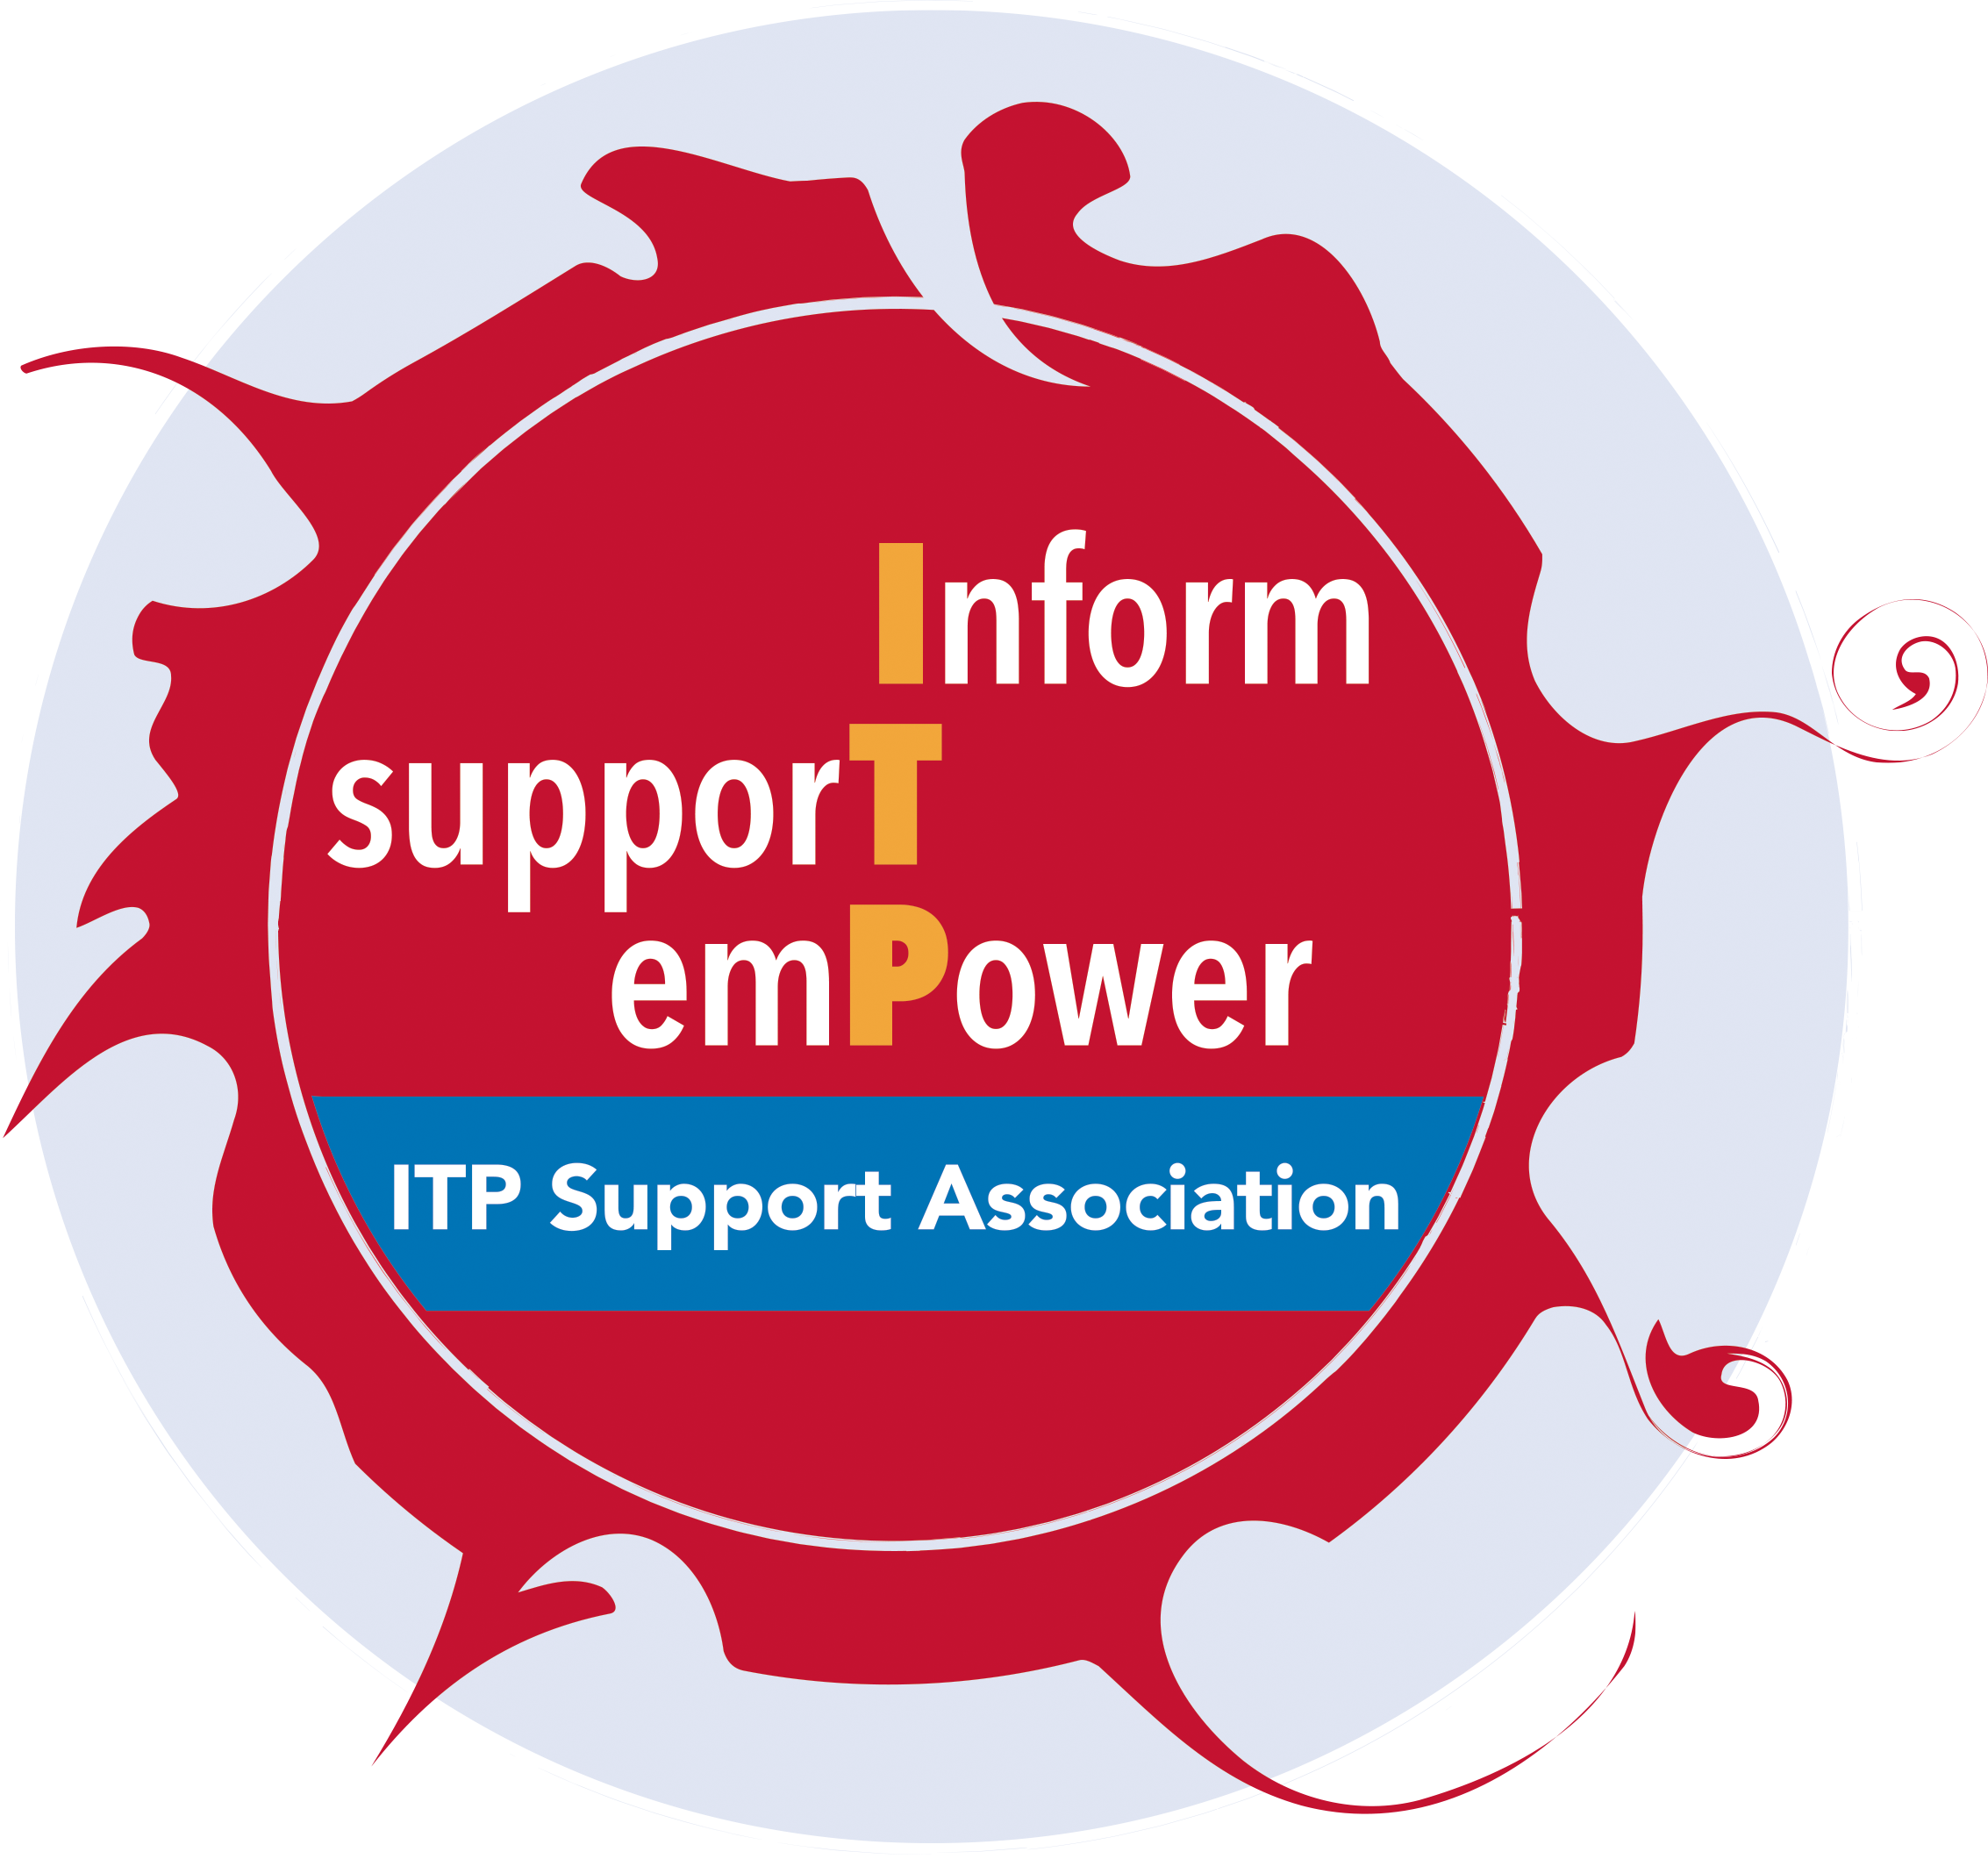 ITP Support Association Logo